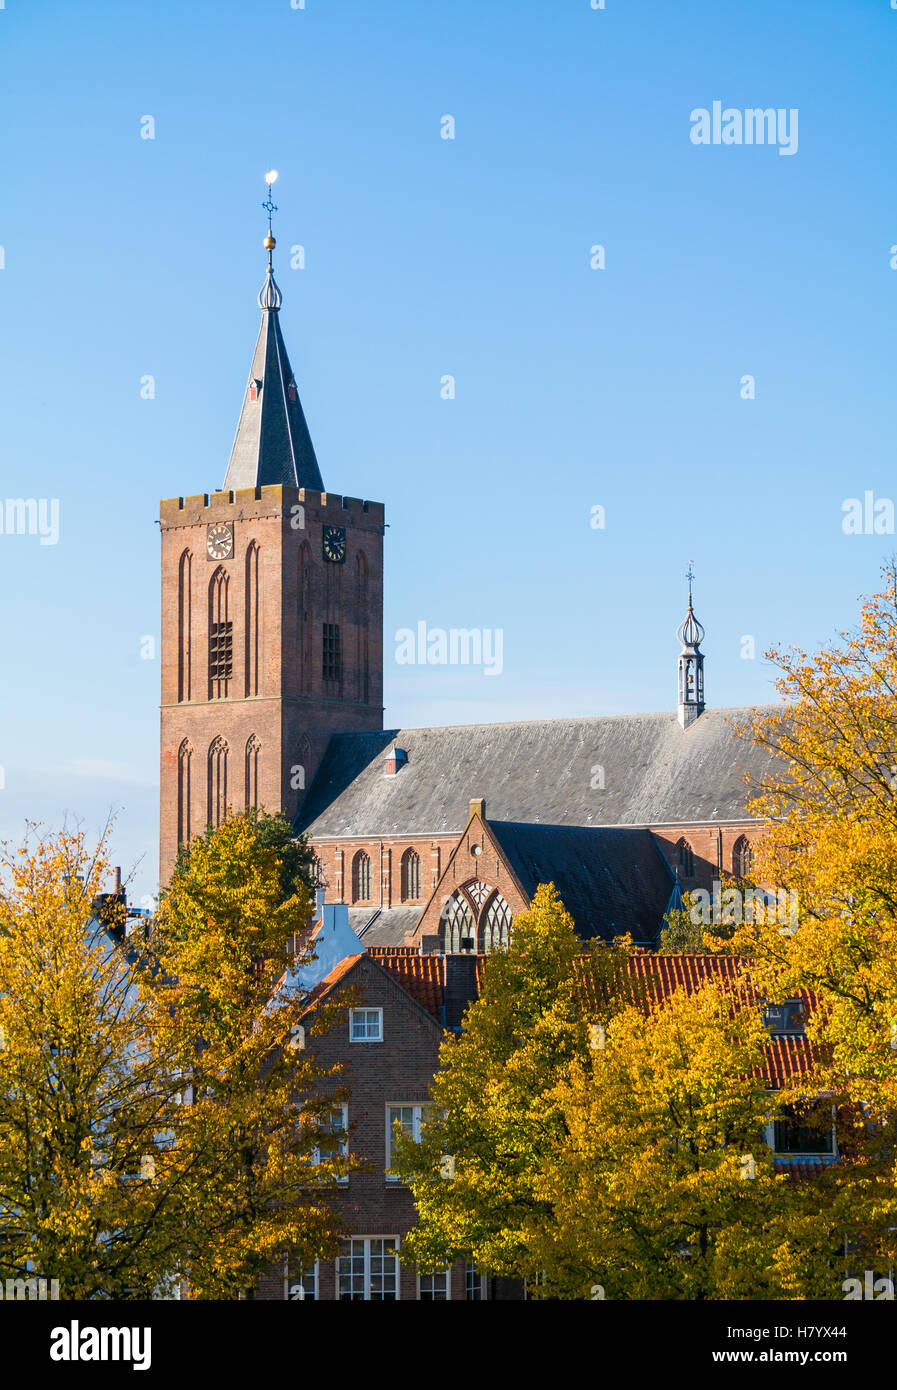 Big Church or Saint Vitus Church and old houses in autumn in Naarden-Vesting, North Holland, Netherlands - Stock Image